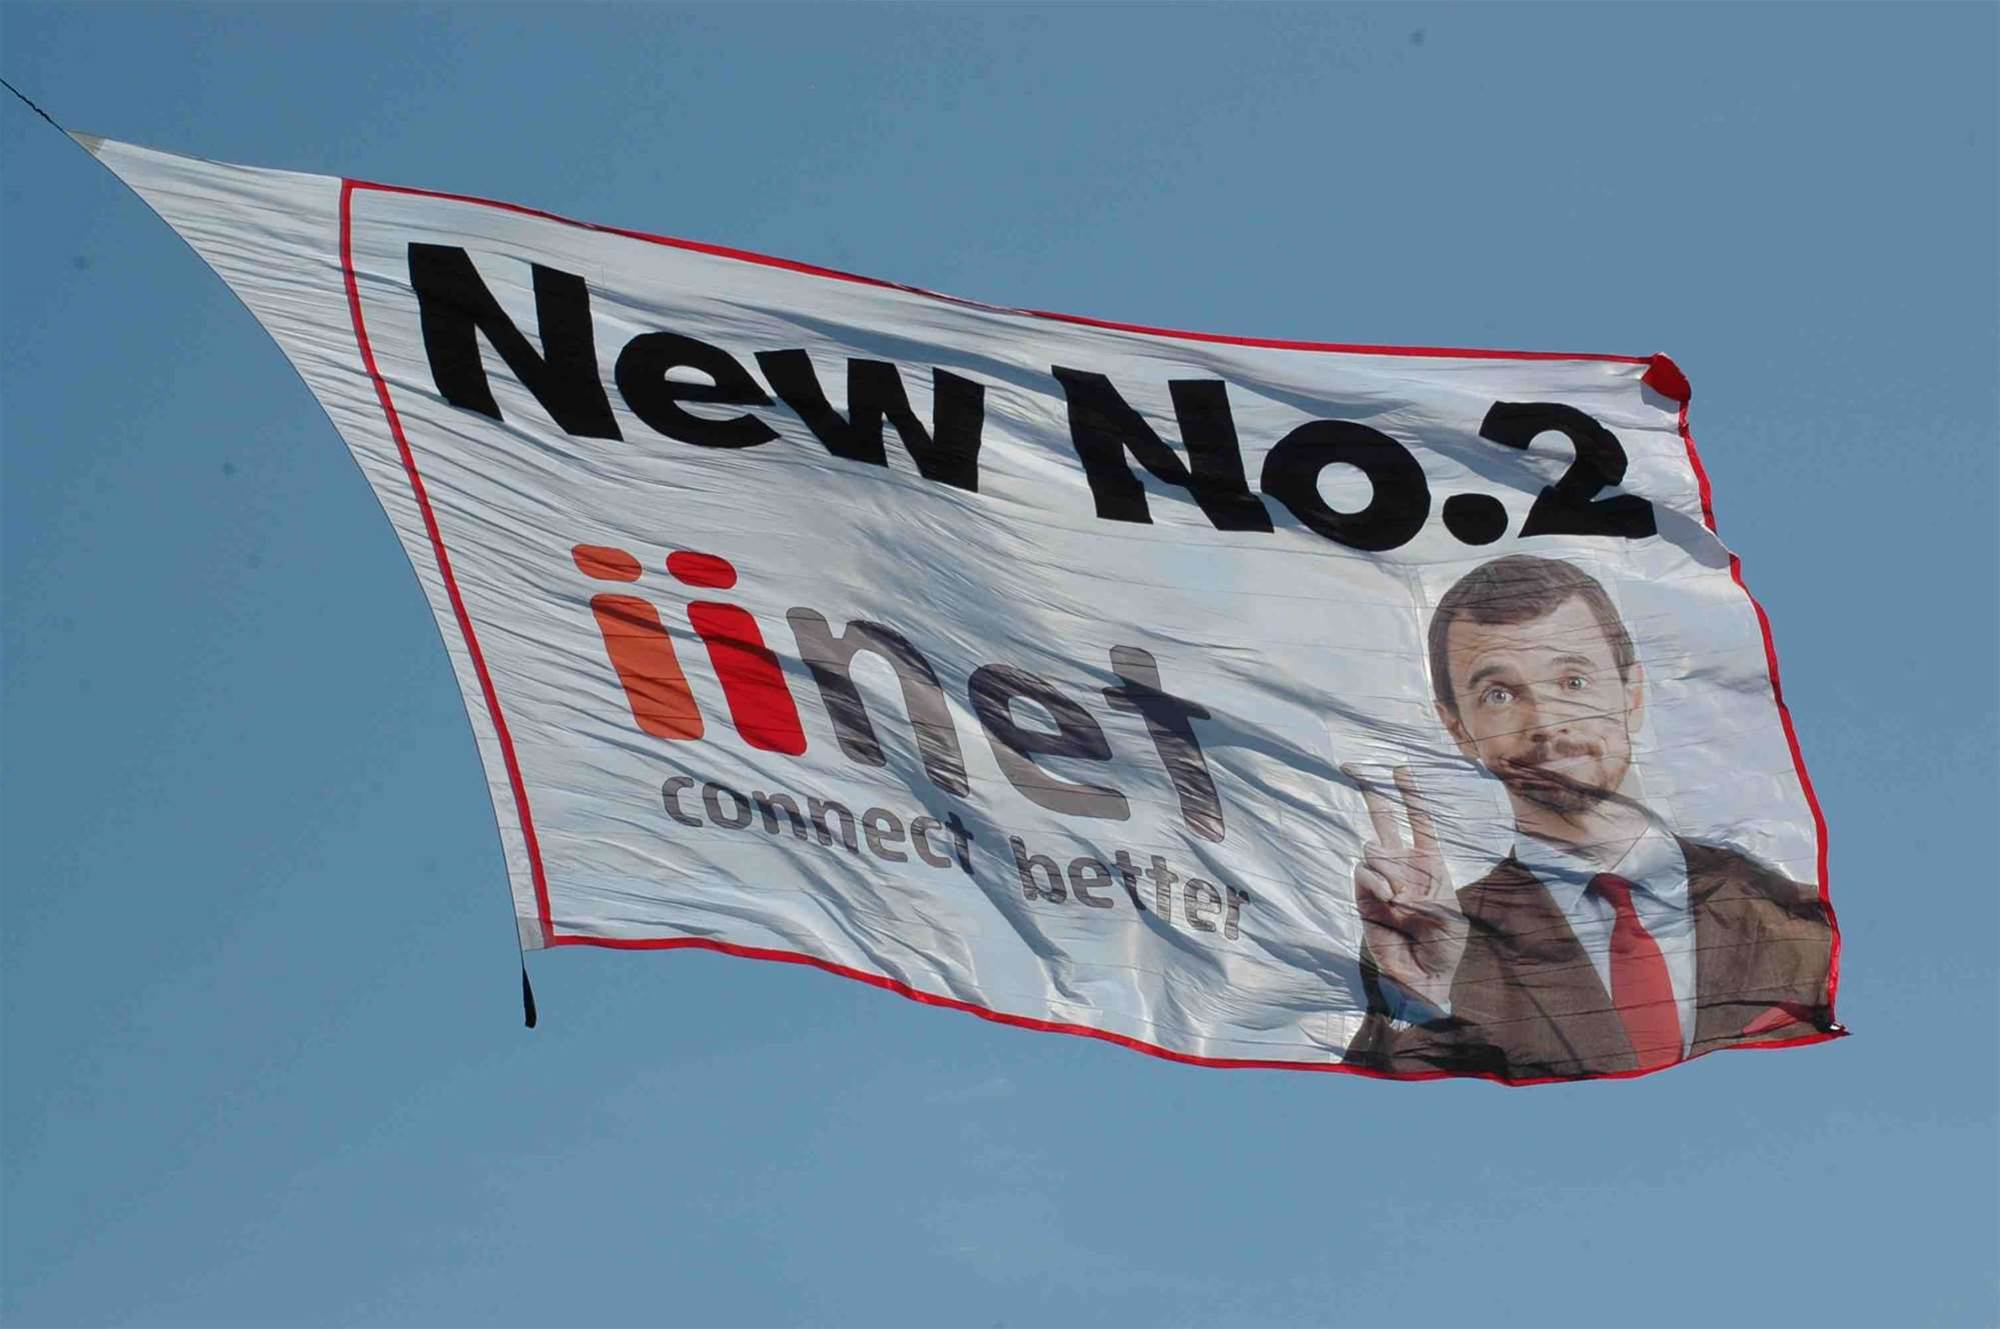 iiNet victorious: Anti-piracy group loses final appeal